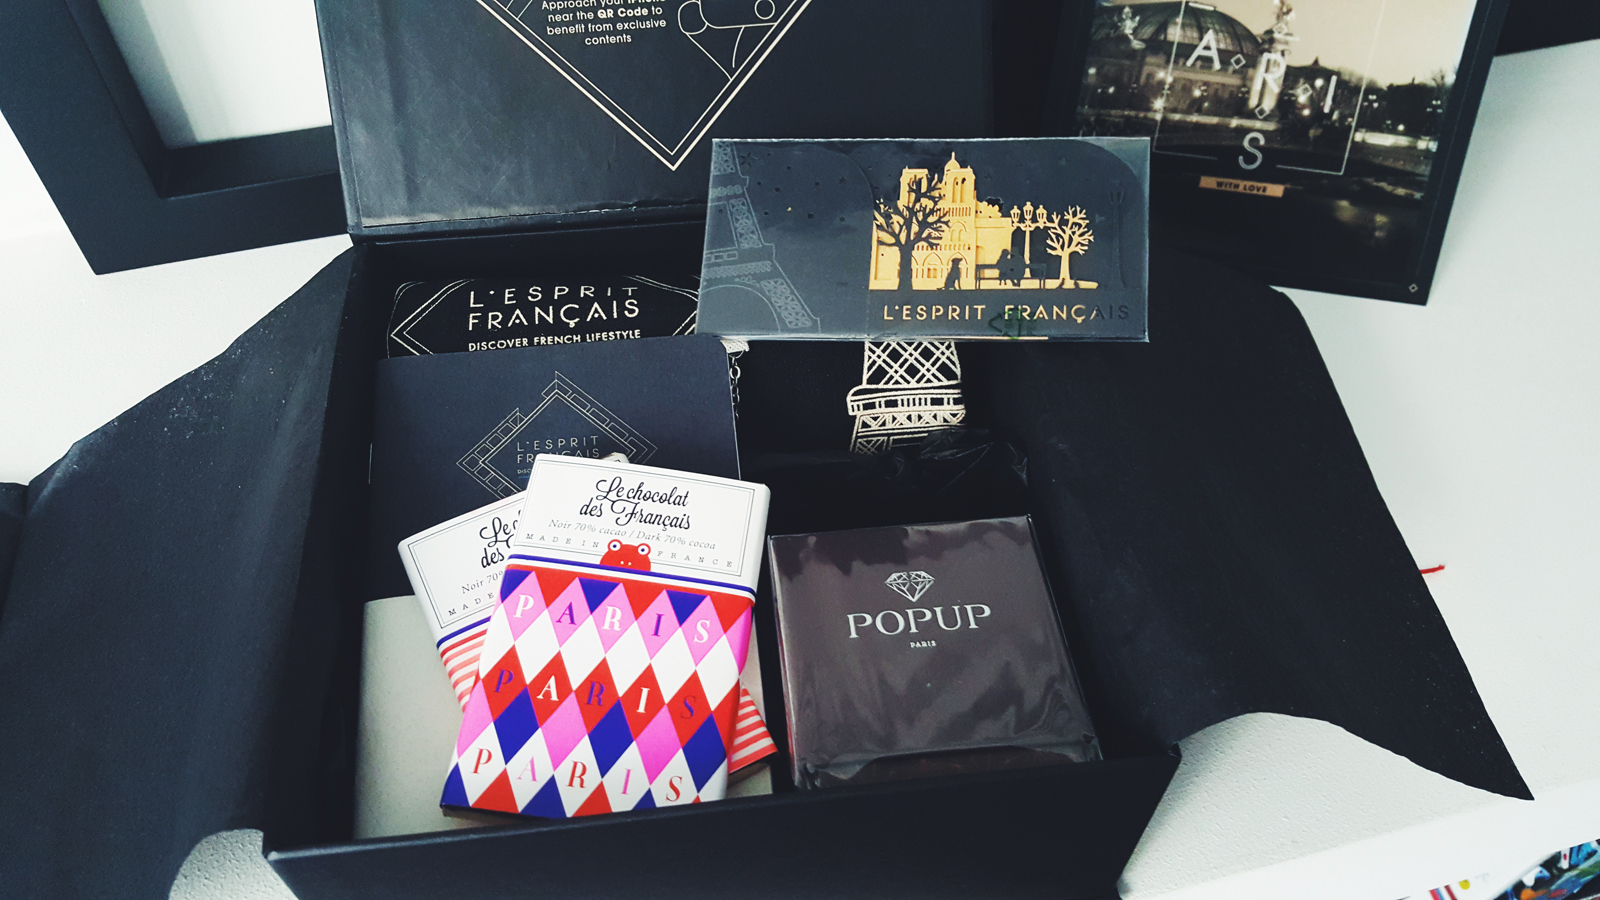 L esprit francais gift box collection Paris City Guide discover french style experience the parisian lifestyle chocolate candle postcard bracelet photo usofparis blog